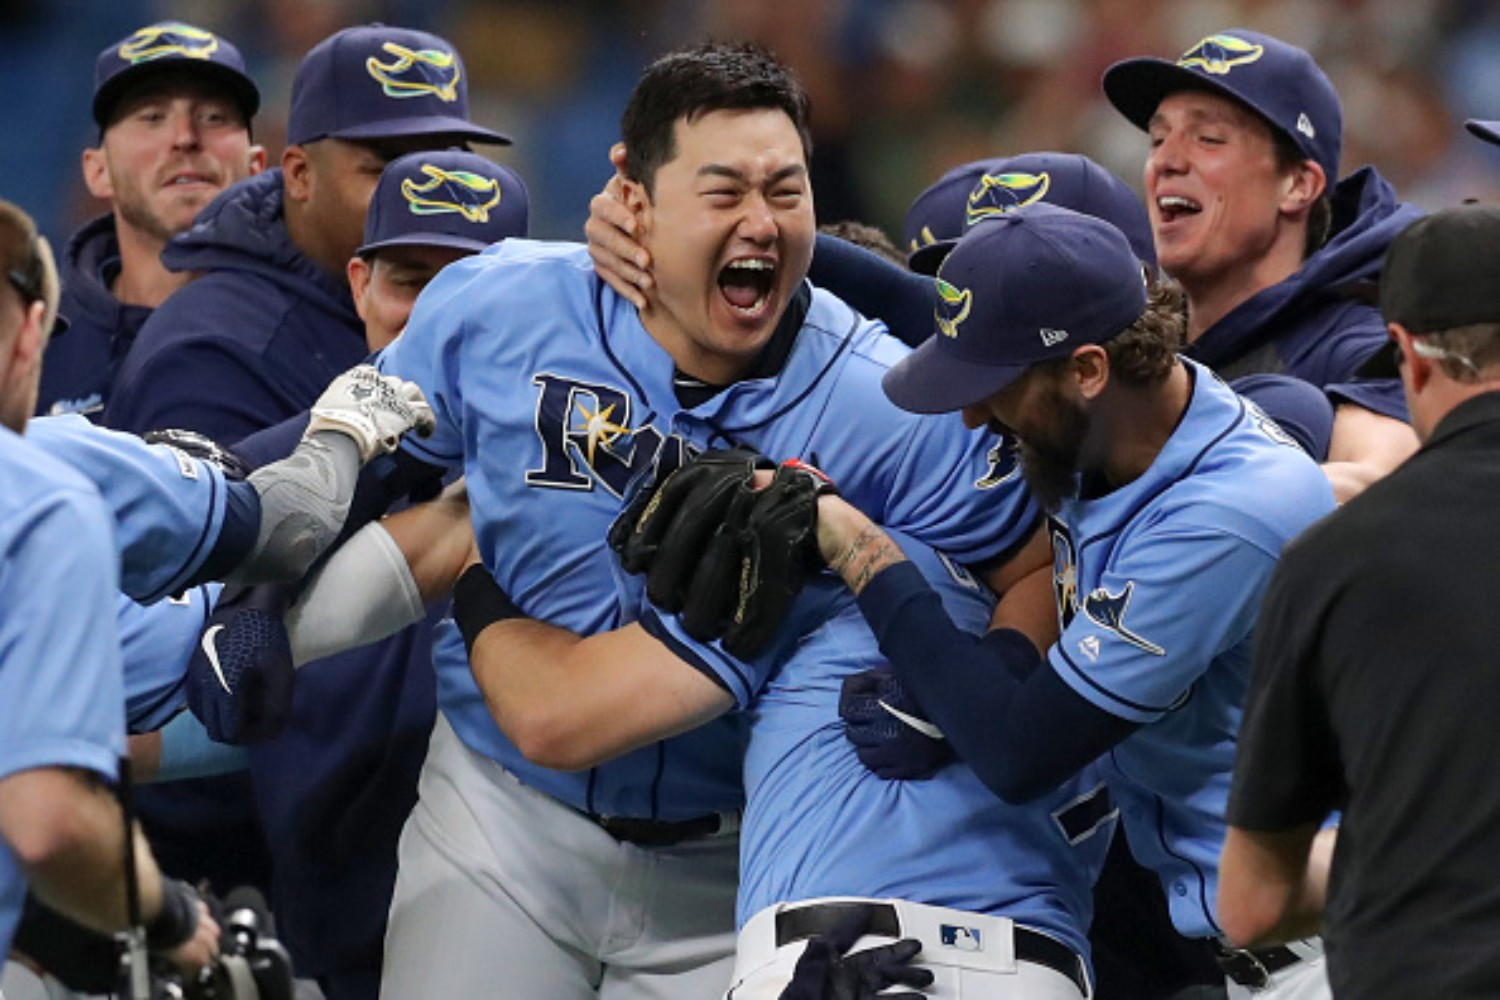 The Tampa Bay Rays are one series away from advancing to their second World Series appearance